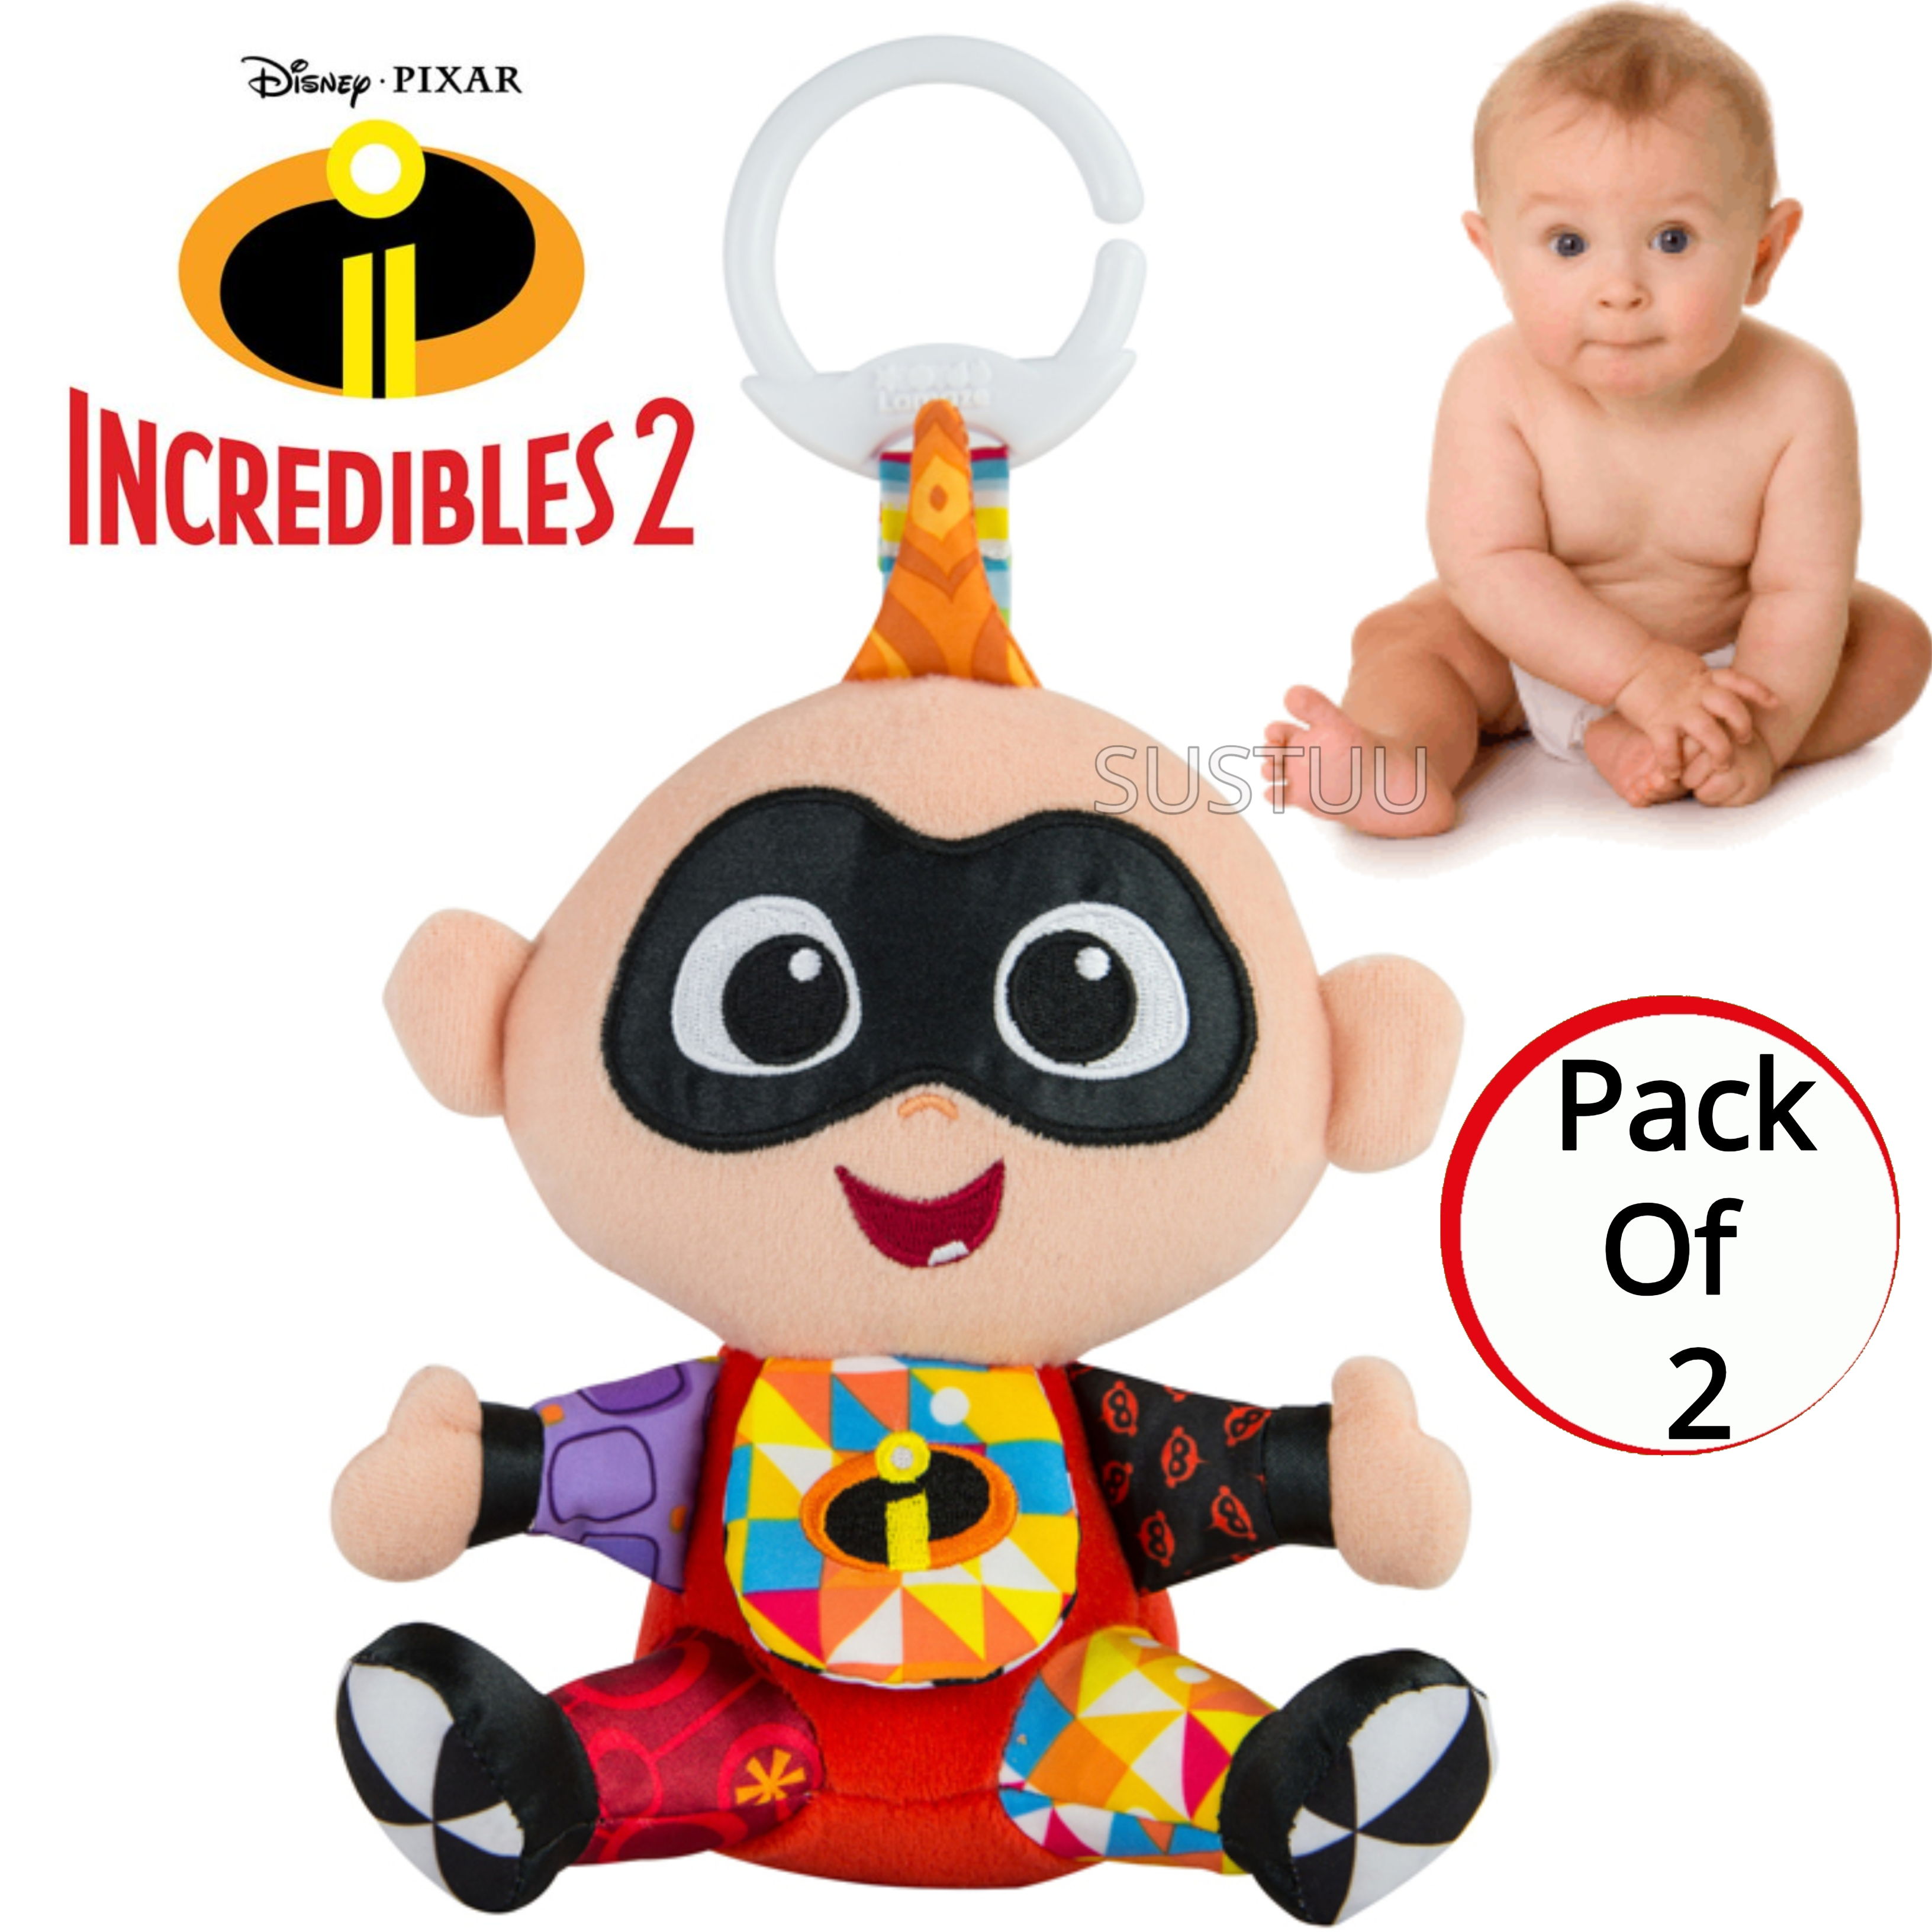 Lamaze Disney Incredibles 2 Clip & Go Jack | Attach To Pram/ Pushchair | With Sound | +0 Months